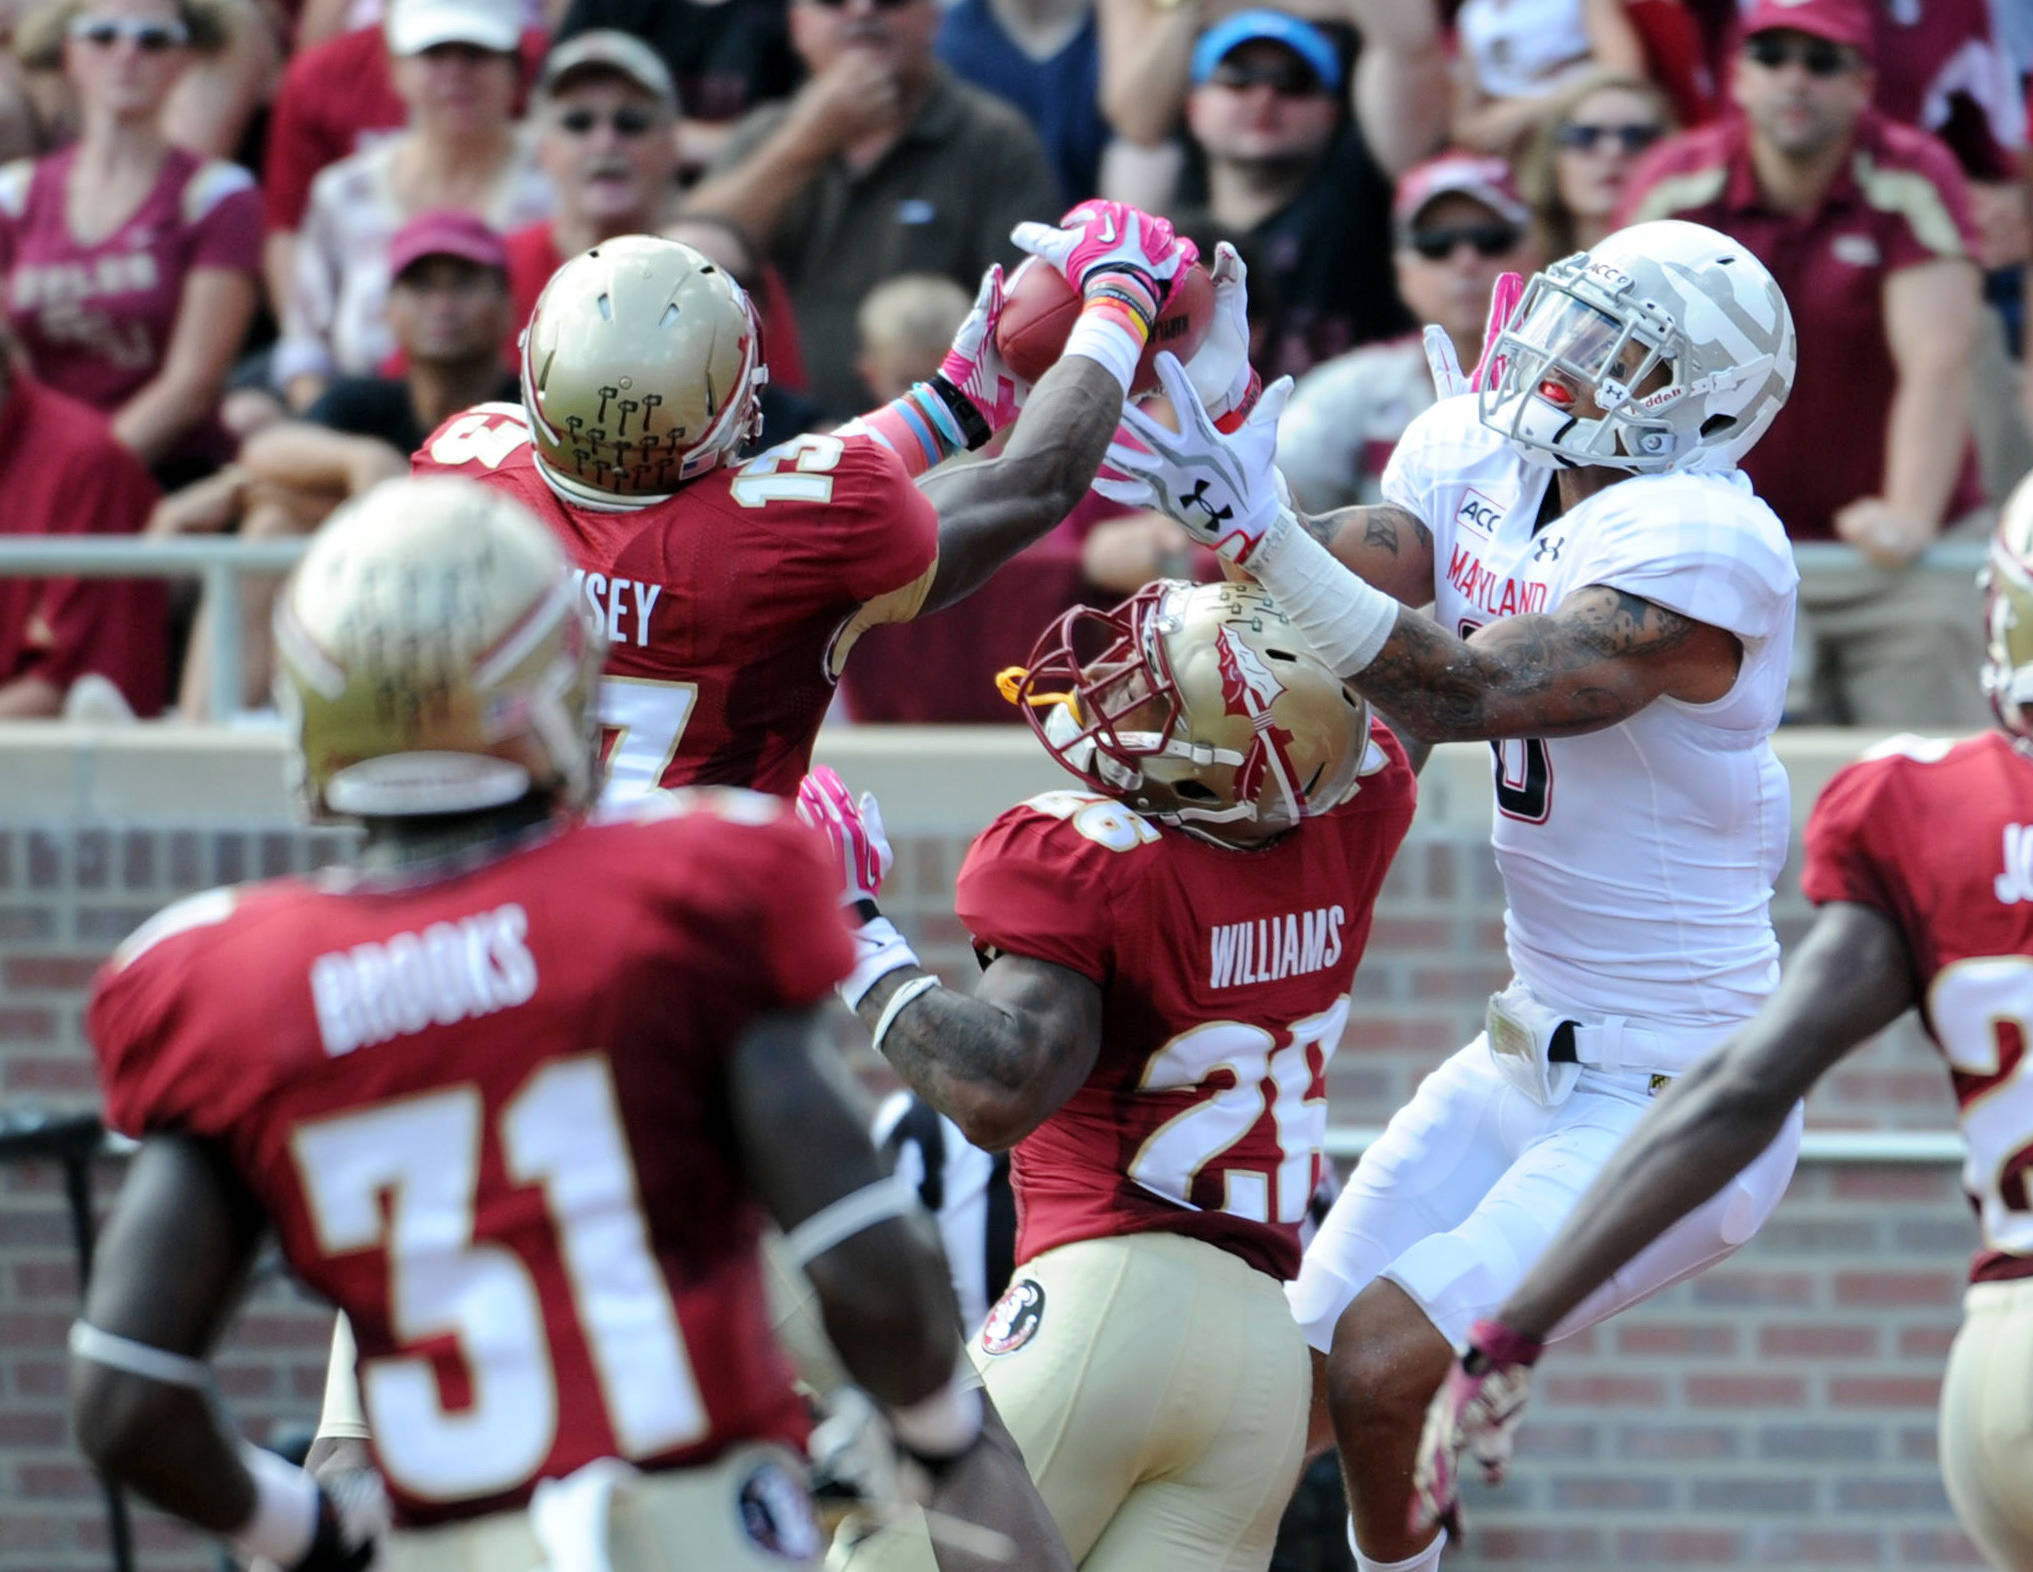 Terrapins wide receiver Deon Long (6) cannot catch the ball while being defended by Seminoles defensive back Jalen Ramsey (13) and defensive back P.J. Williams (26). Mandatory Credit: Melina Vastola-USA TODAY Sports